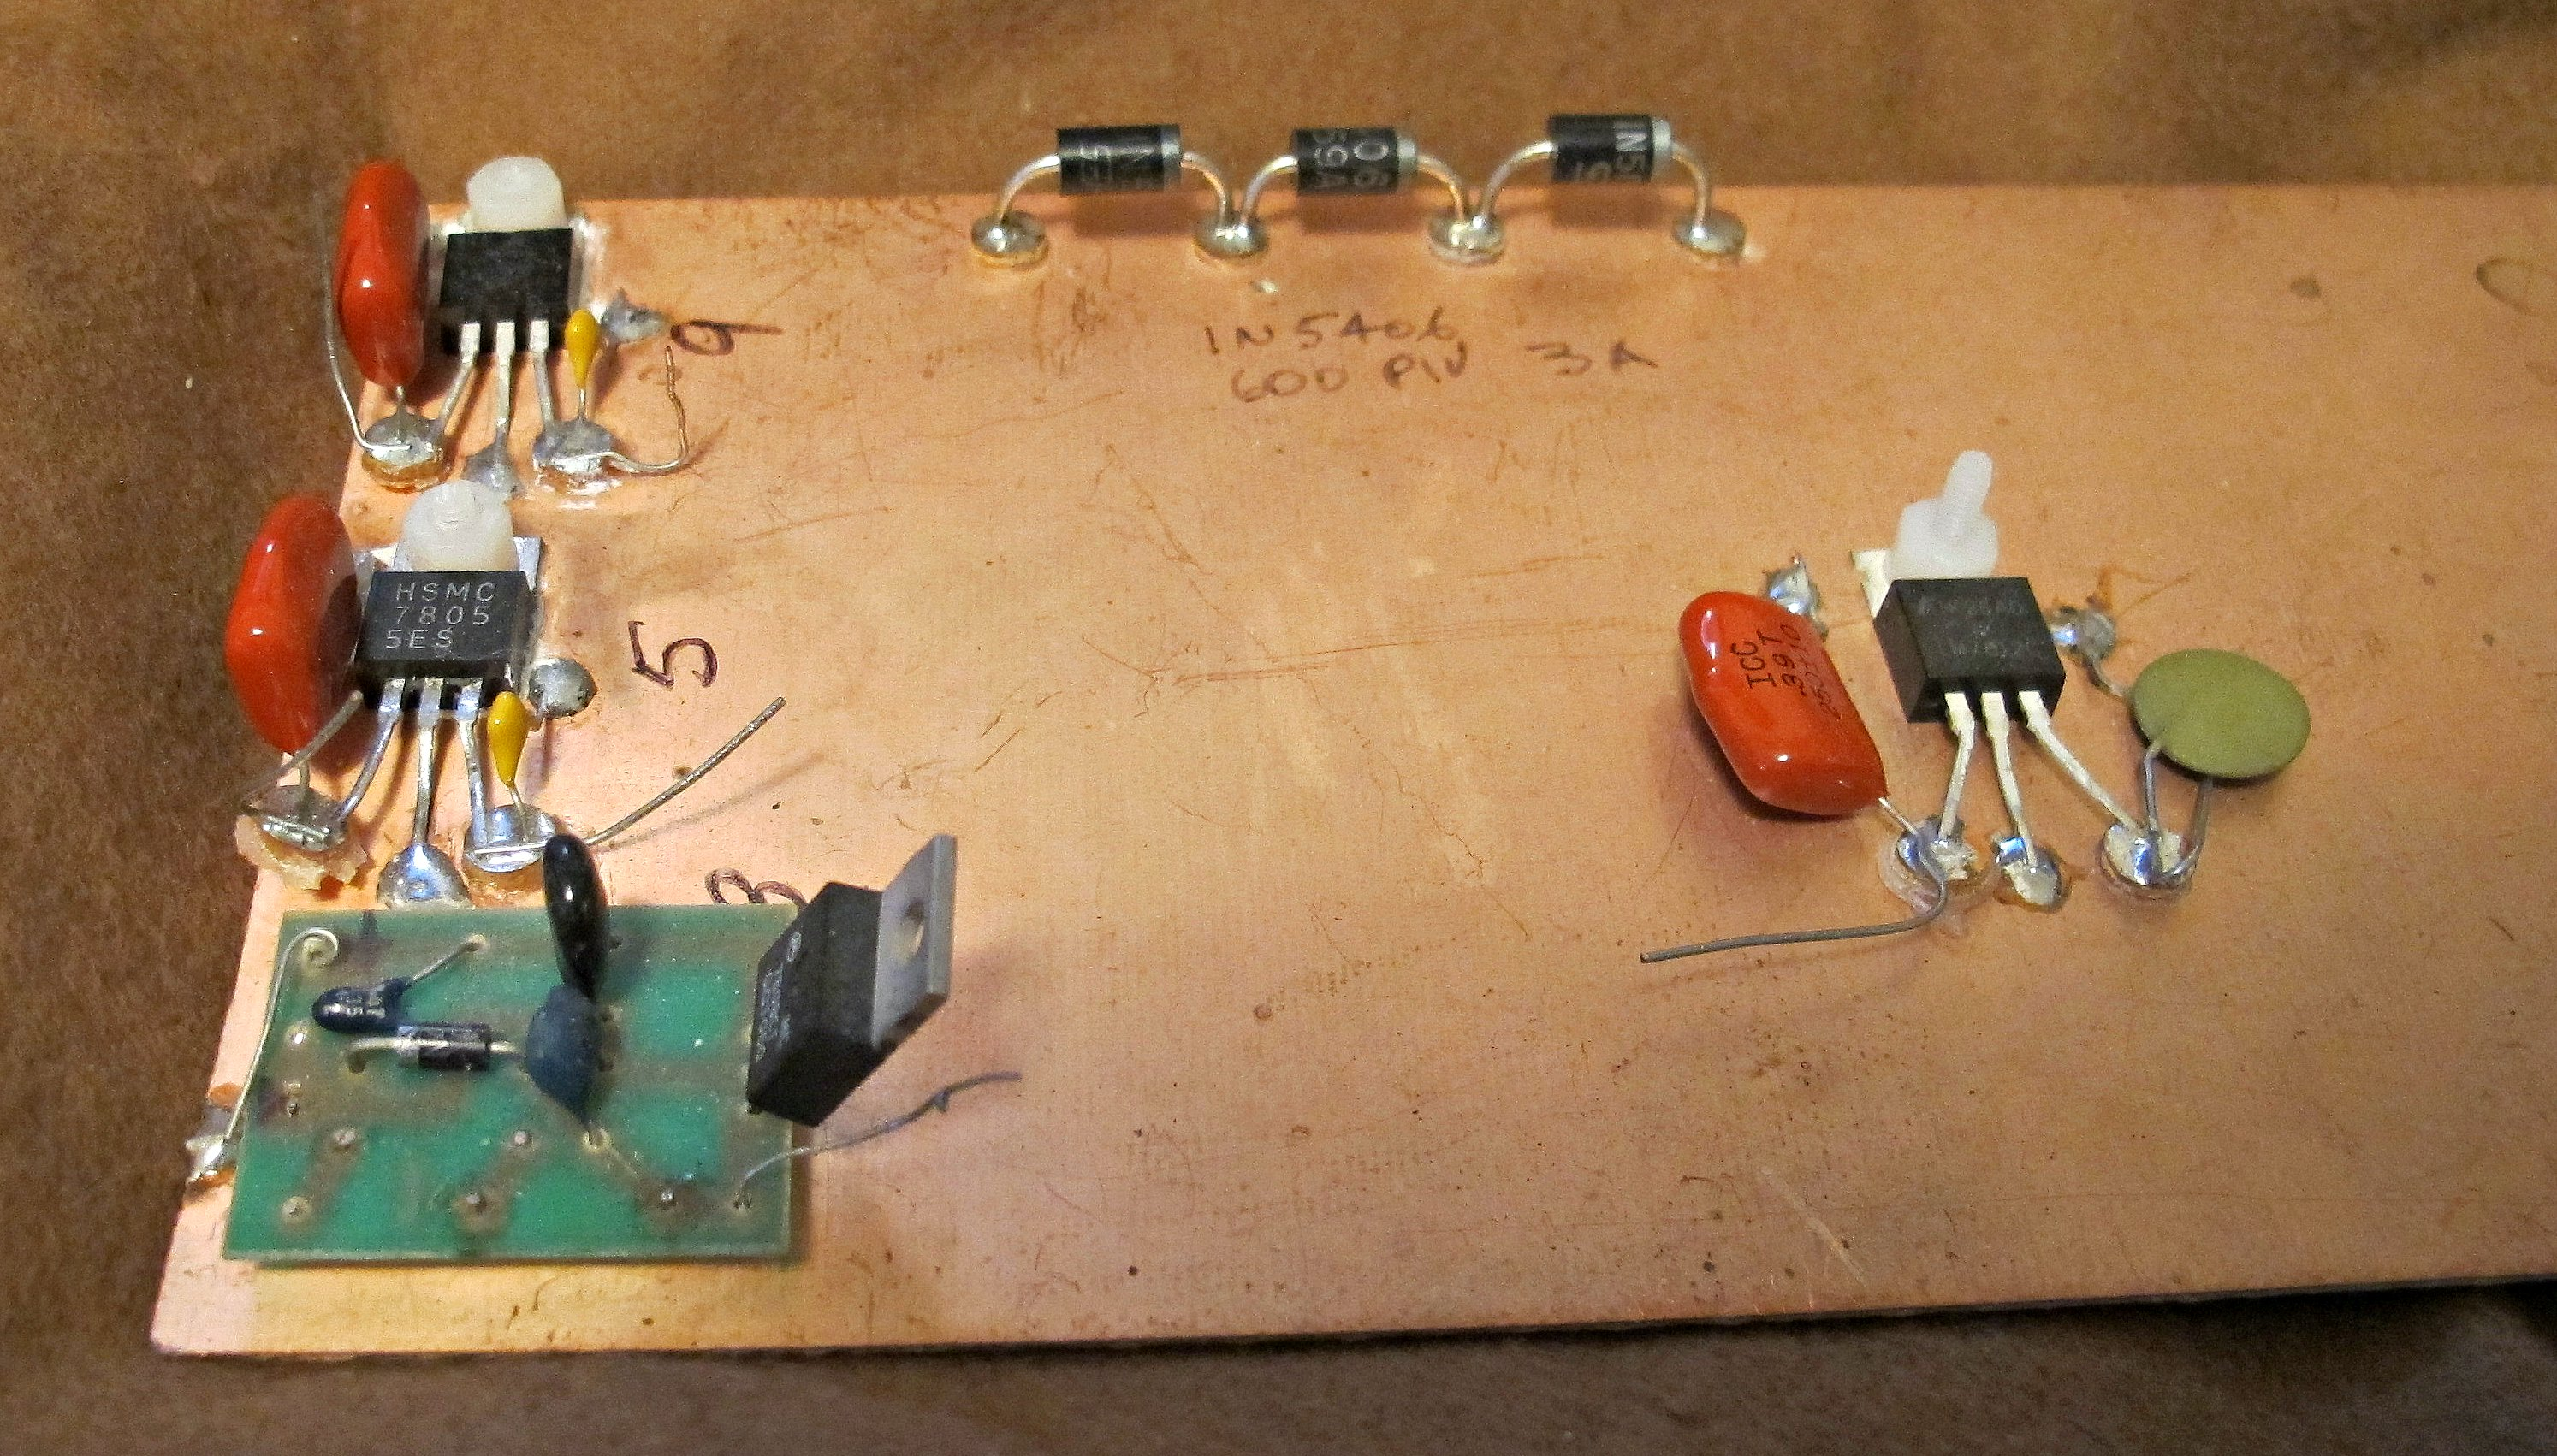 Lm338 Power Supply How To Build Variable Voltage And Current Clumsy Bench